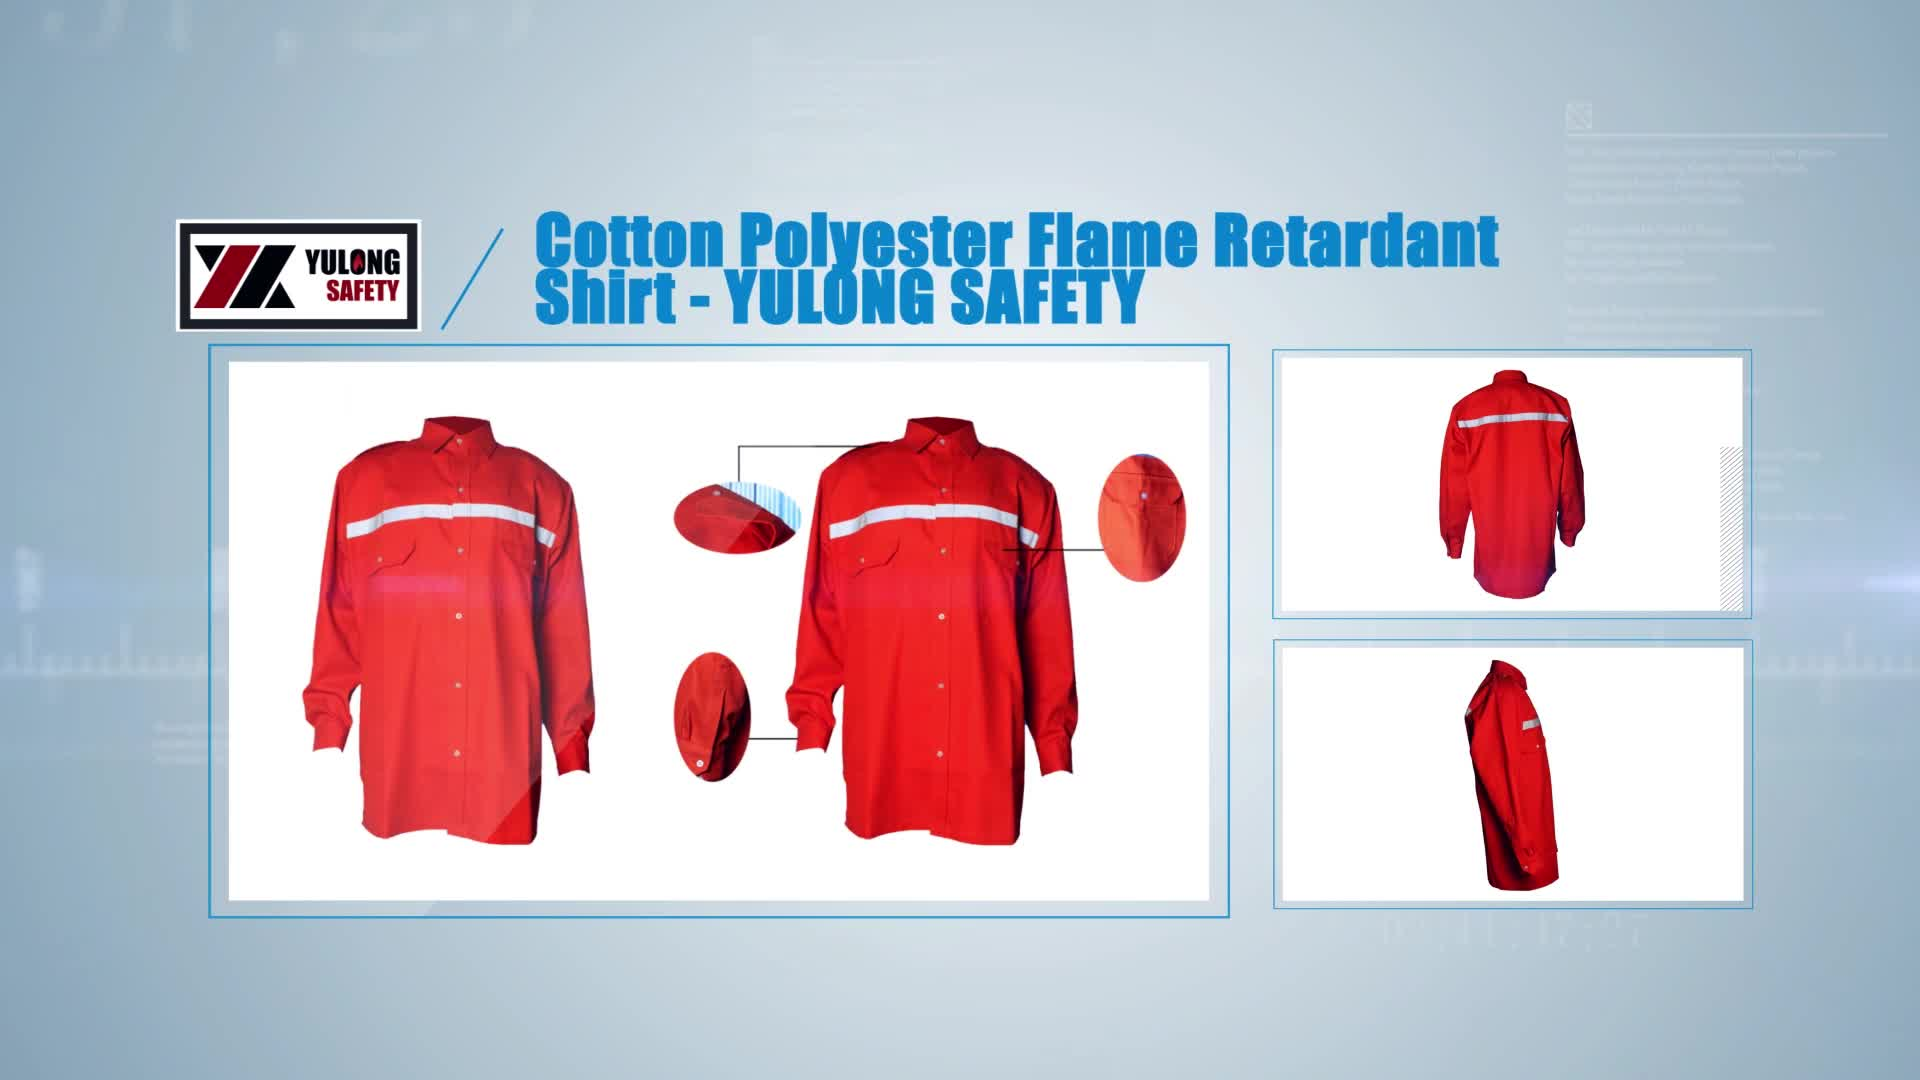 Flame Resistant T Shirt Clothing Frc With high visibility